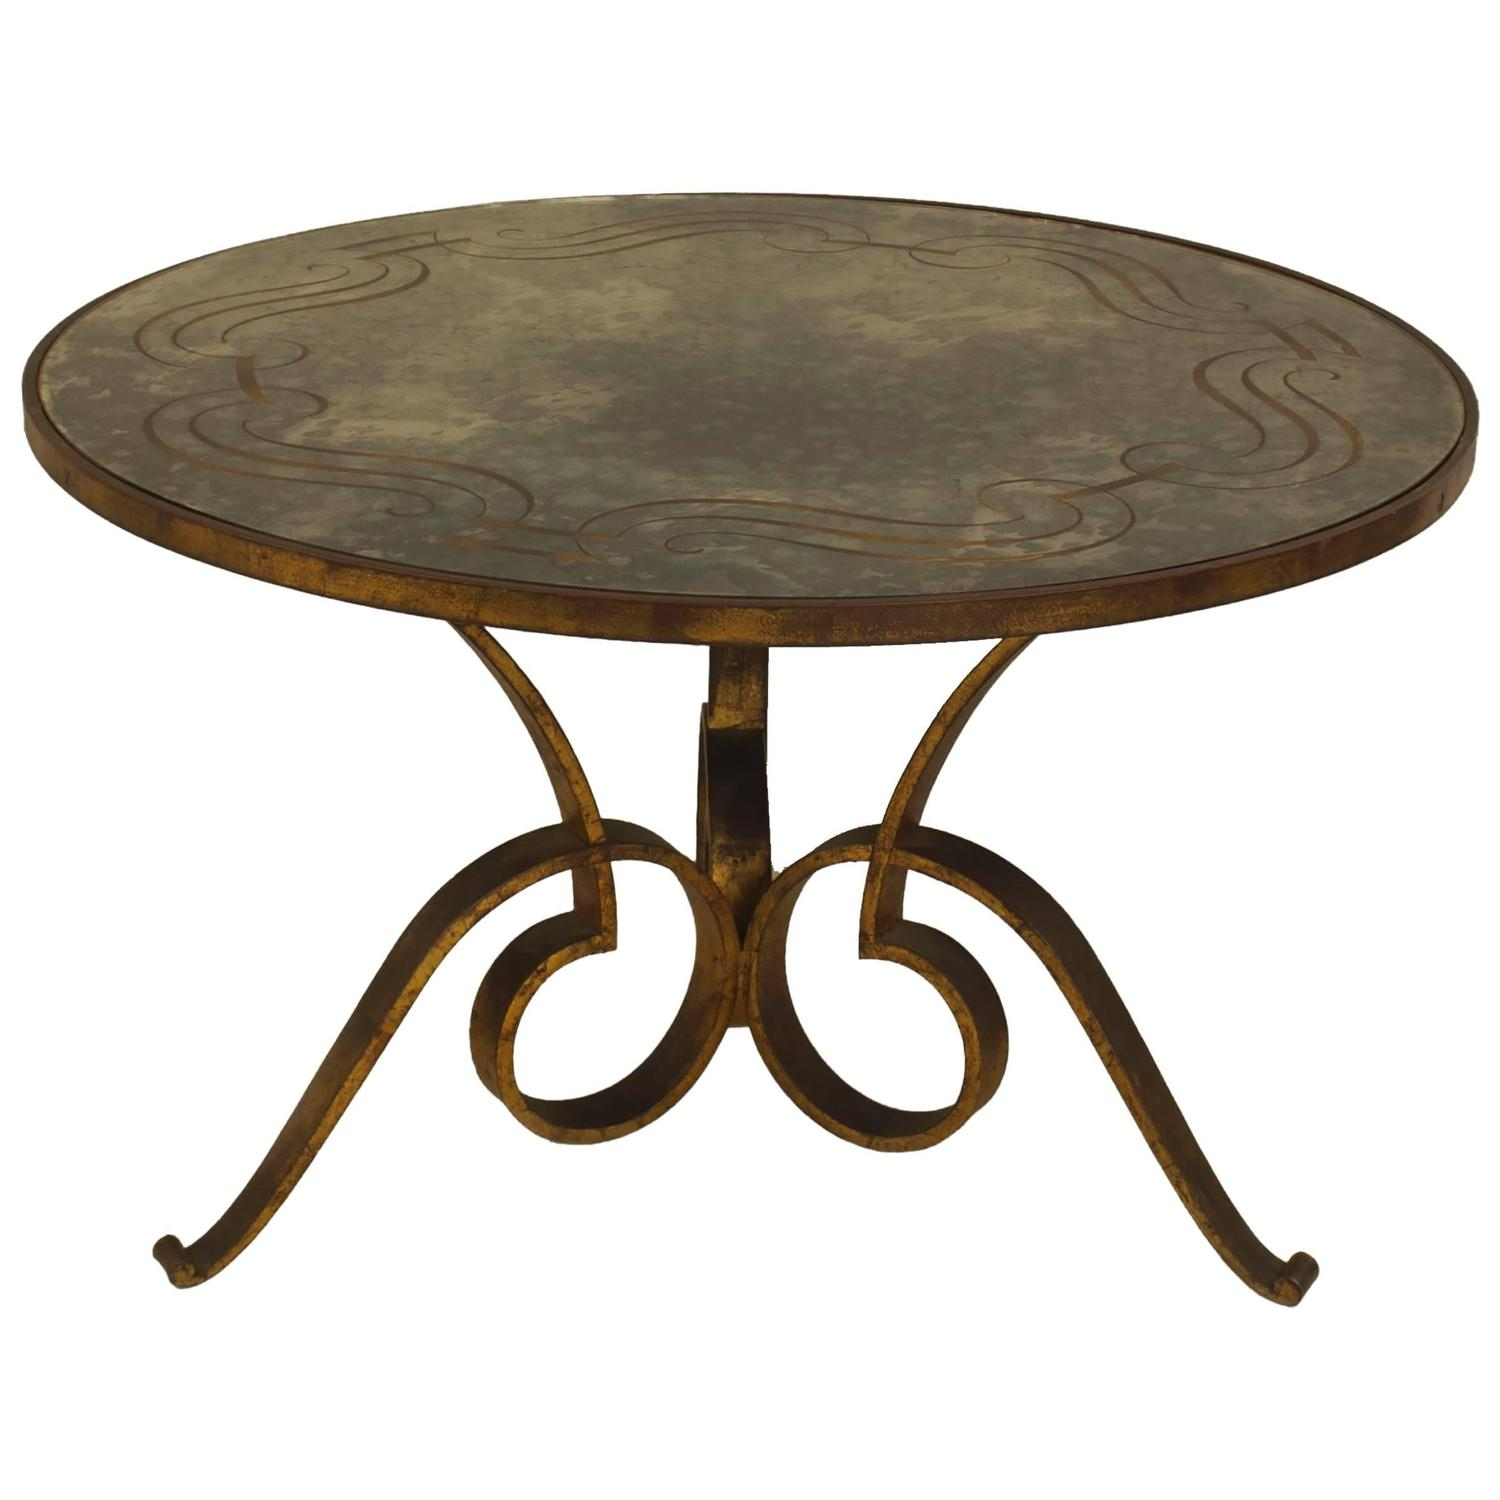 1940s French Circular Hand Hammered Iron Coffee Table With Verre Glomis Top At 1stdibs